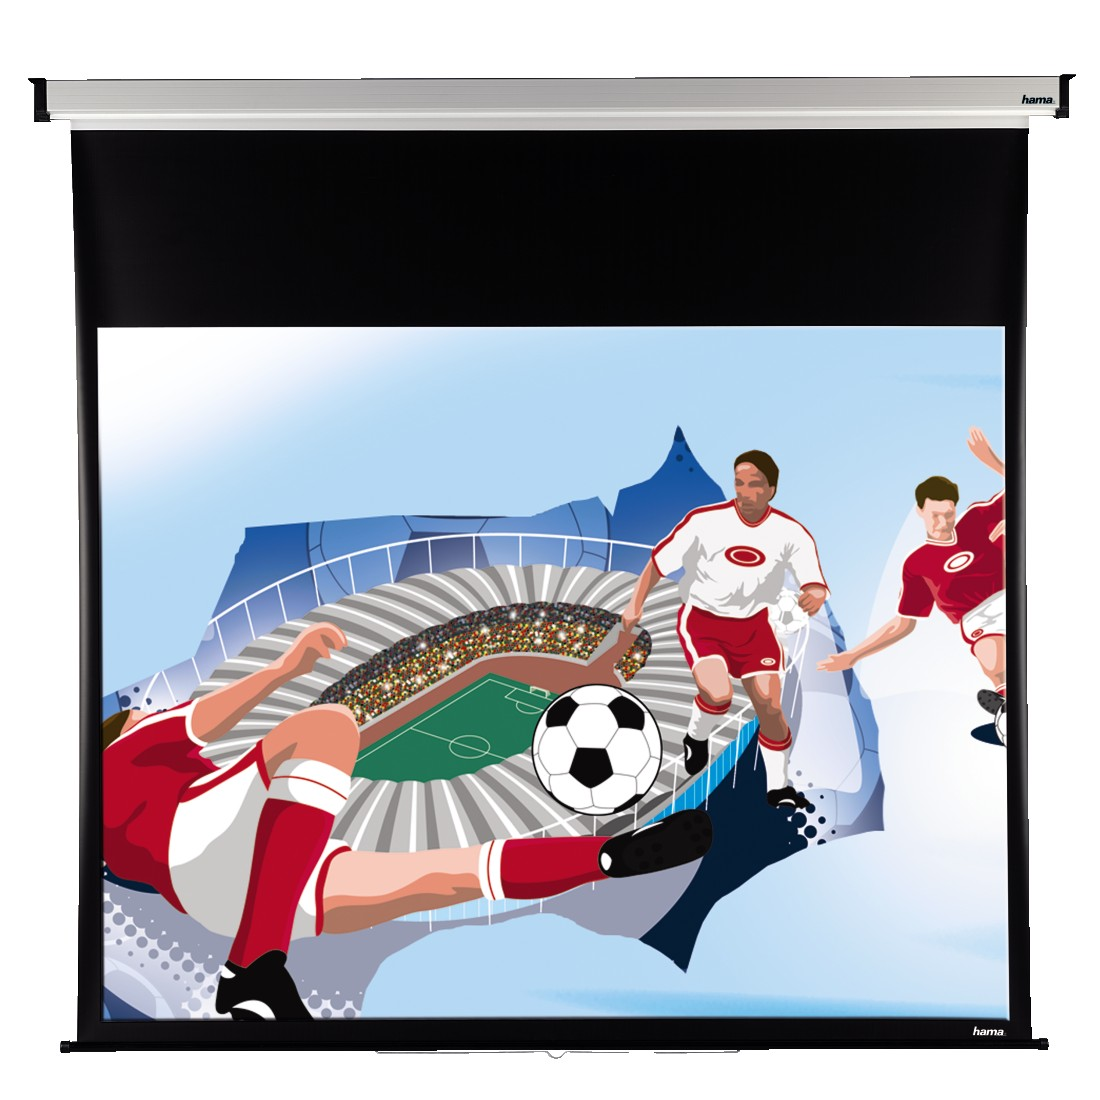 abx2 High-Res Image 2 - Hama, Roller Projection Screen, 180 x 160 cm, 4:3